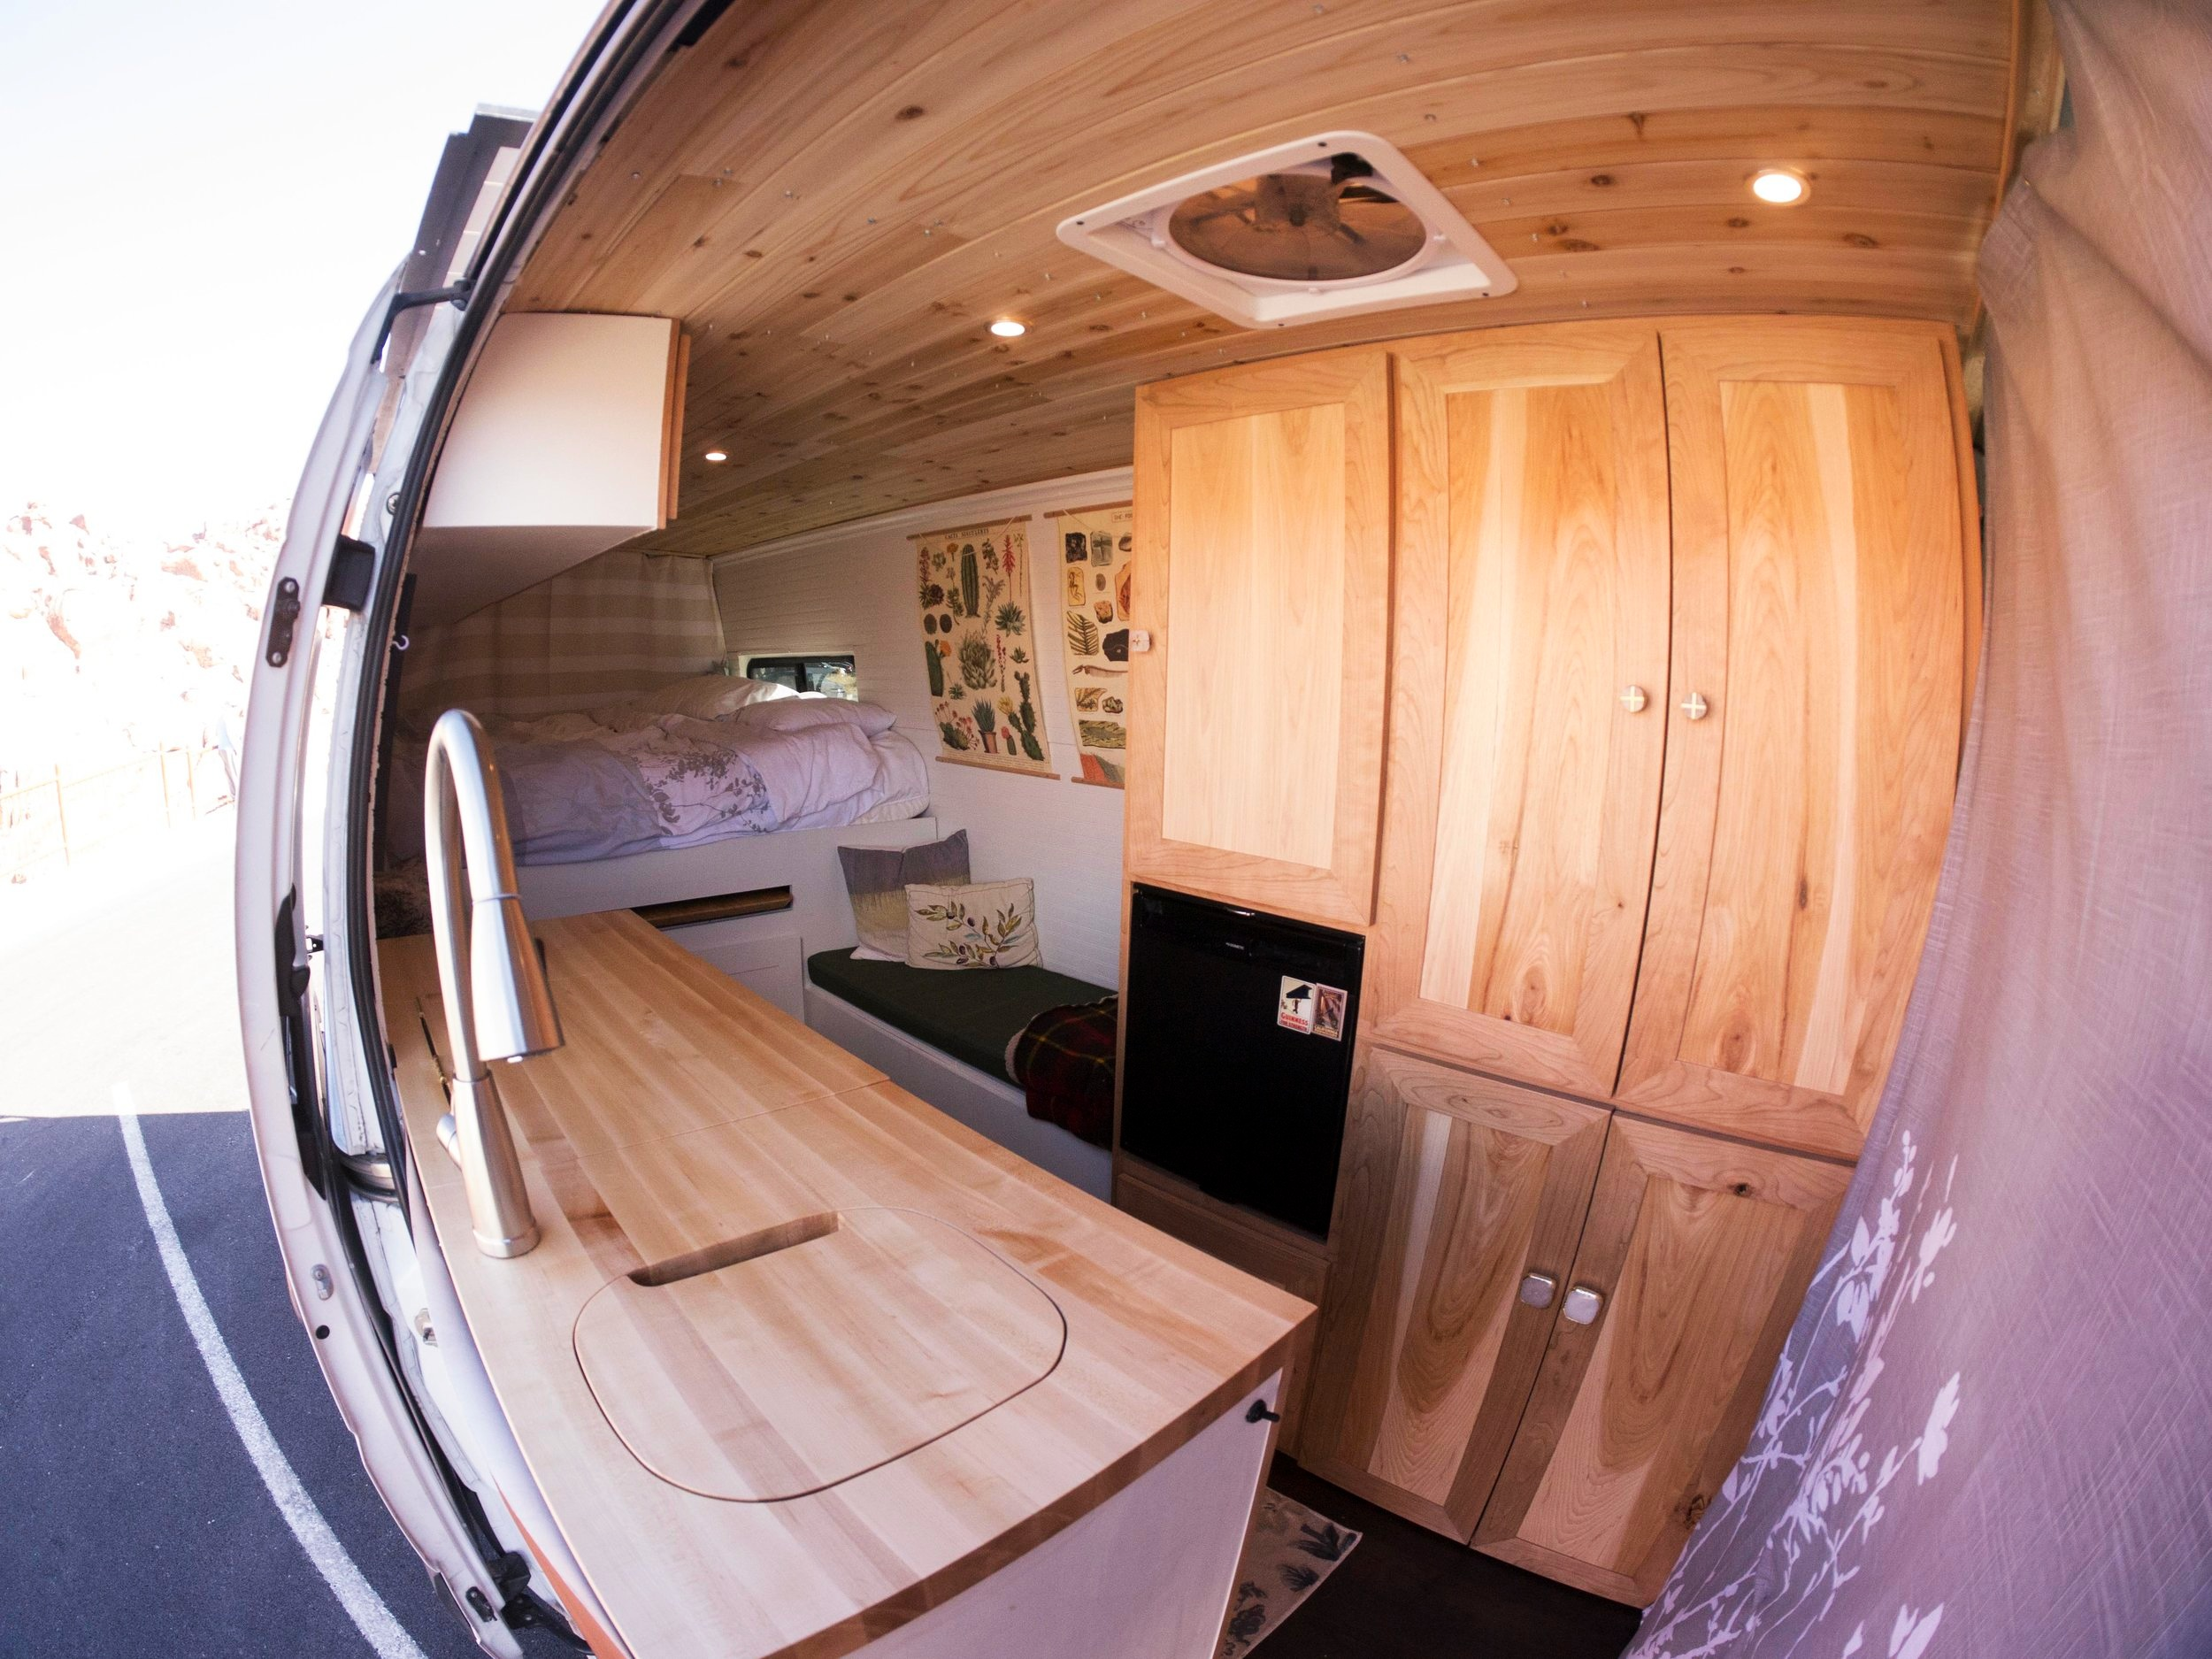 A brief overview of the van, it's a 2013 Mercedes Sprinter that I converted for a woodworking class while still in art school. I did all the work myself within the span of about 2 months. Cabinets are Hickory and Cherry, Maple butcher block countertop, 530watts of solar which powers a fridge, lights fans, water system and power outlets, insulated the whole van with sheeps wool and has tons of storage! A lot of design thinking used to figure out the layout best suited for my girlfriend and I, along with a ton of experience gained through building. If you have any questions I'm more than happy to help!